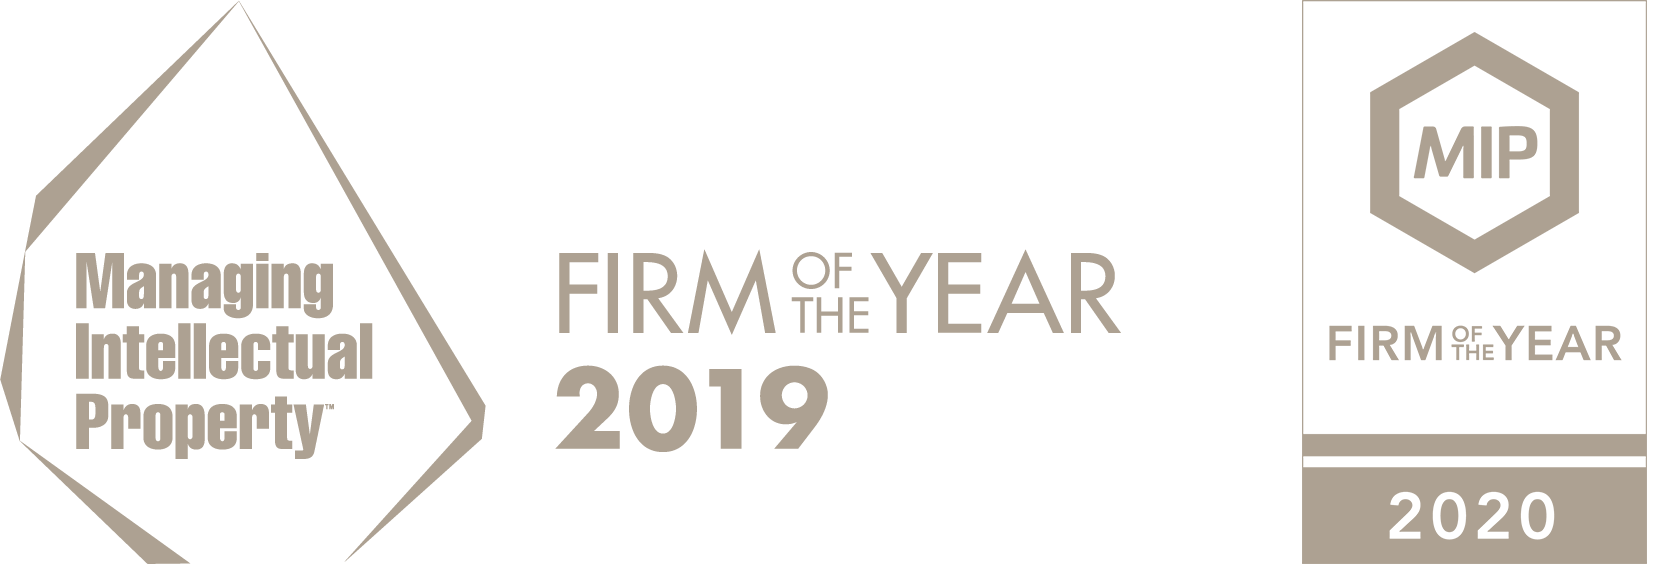 Puchberger & Partner - Firm of the Year 2019-2020